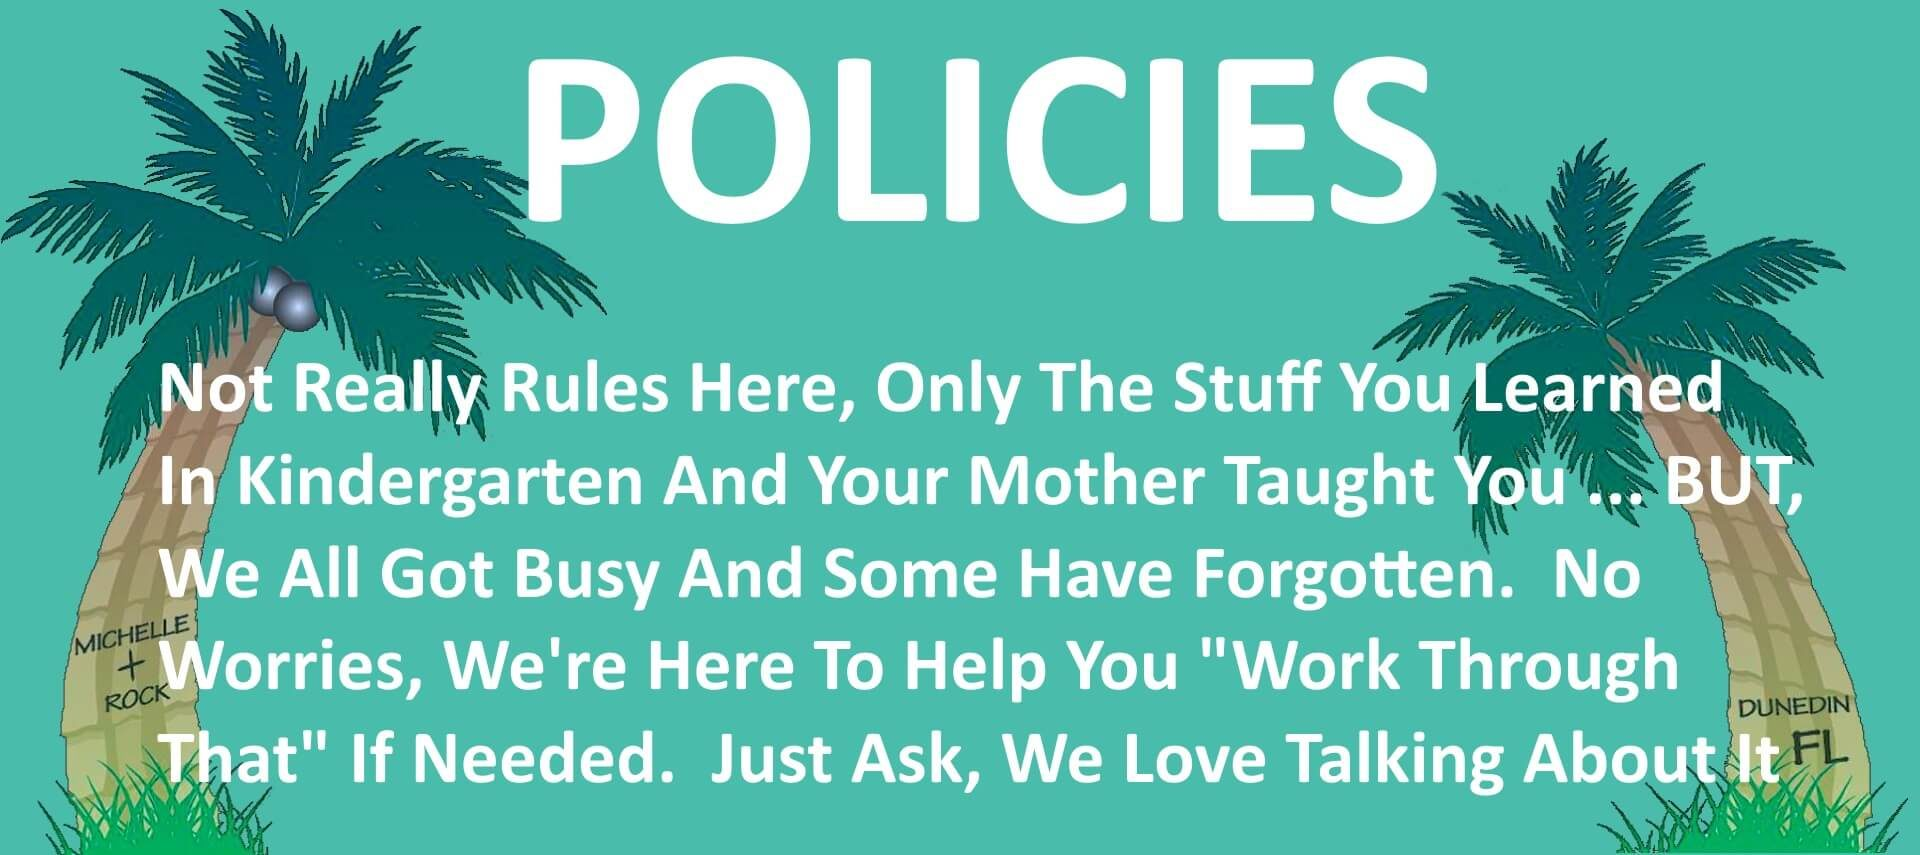 Teal background with palm trees and wording about the Policies page.